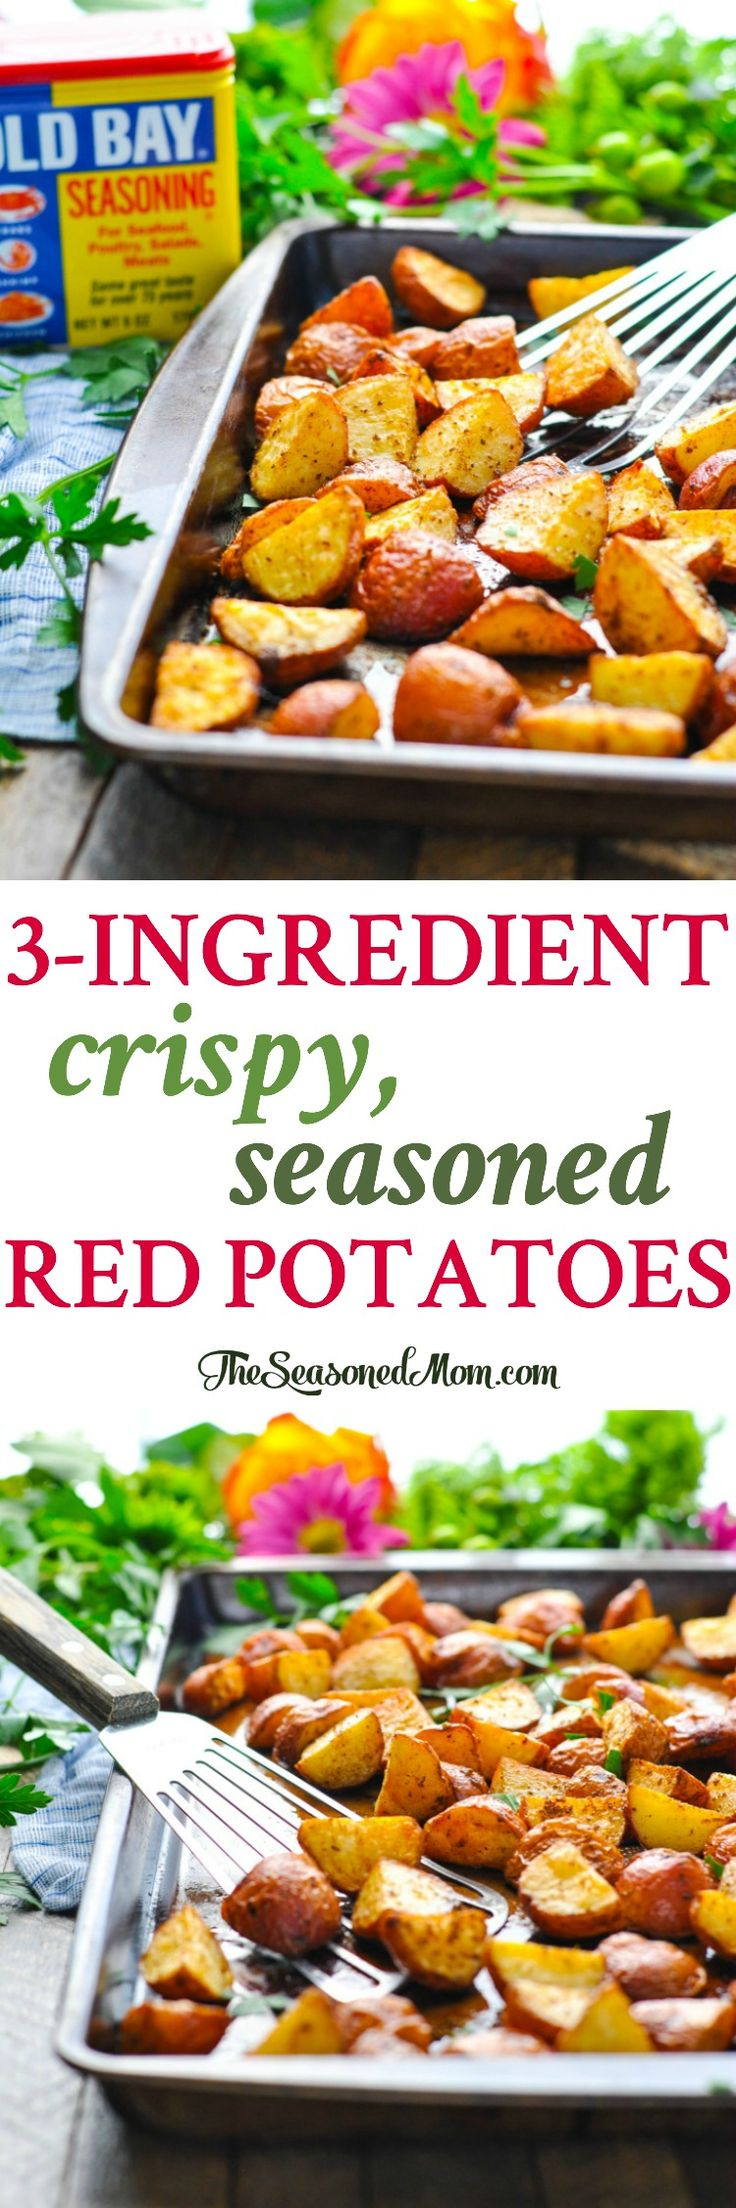 These 3-Ingredient Crispy Seasoned Red Potatoes are one of our favorite easy side dishes! Side Dish Recipes Easy | 5 Ingredients or Less Recipes | Sides